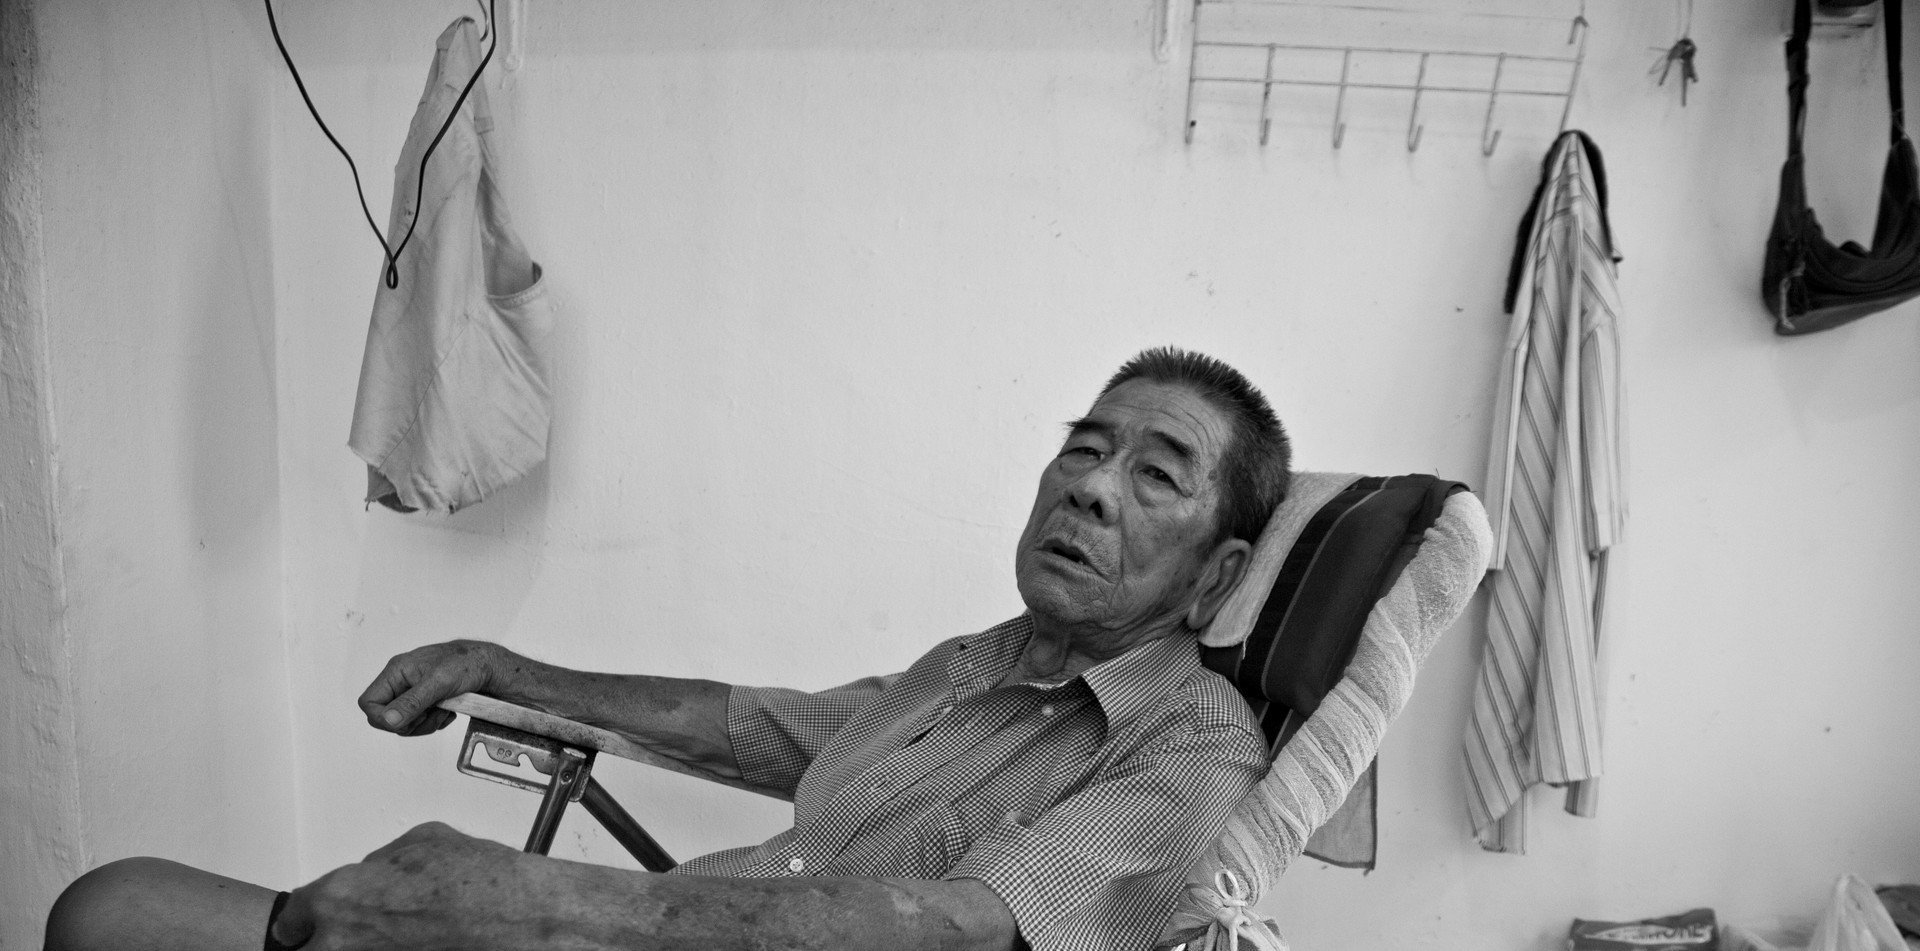 Senior citizen with mental challenges in temporary housing in Singapore